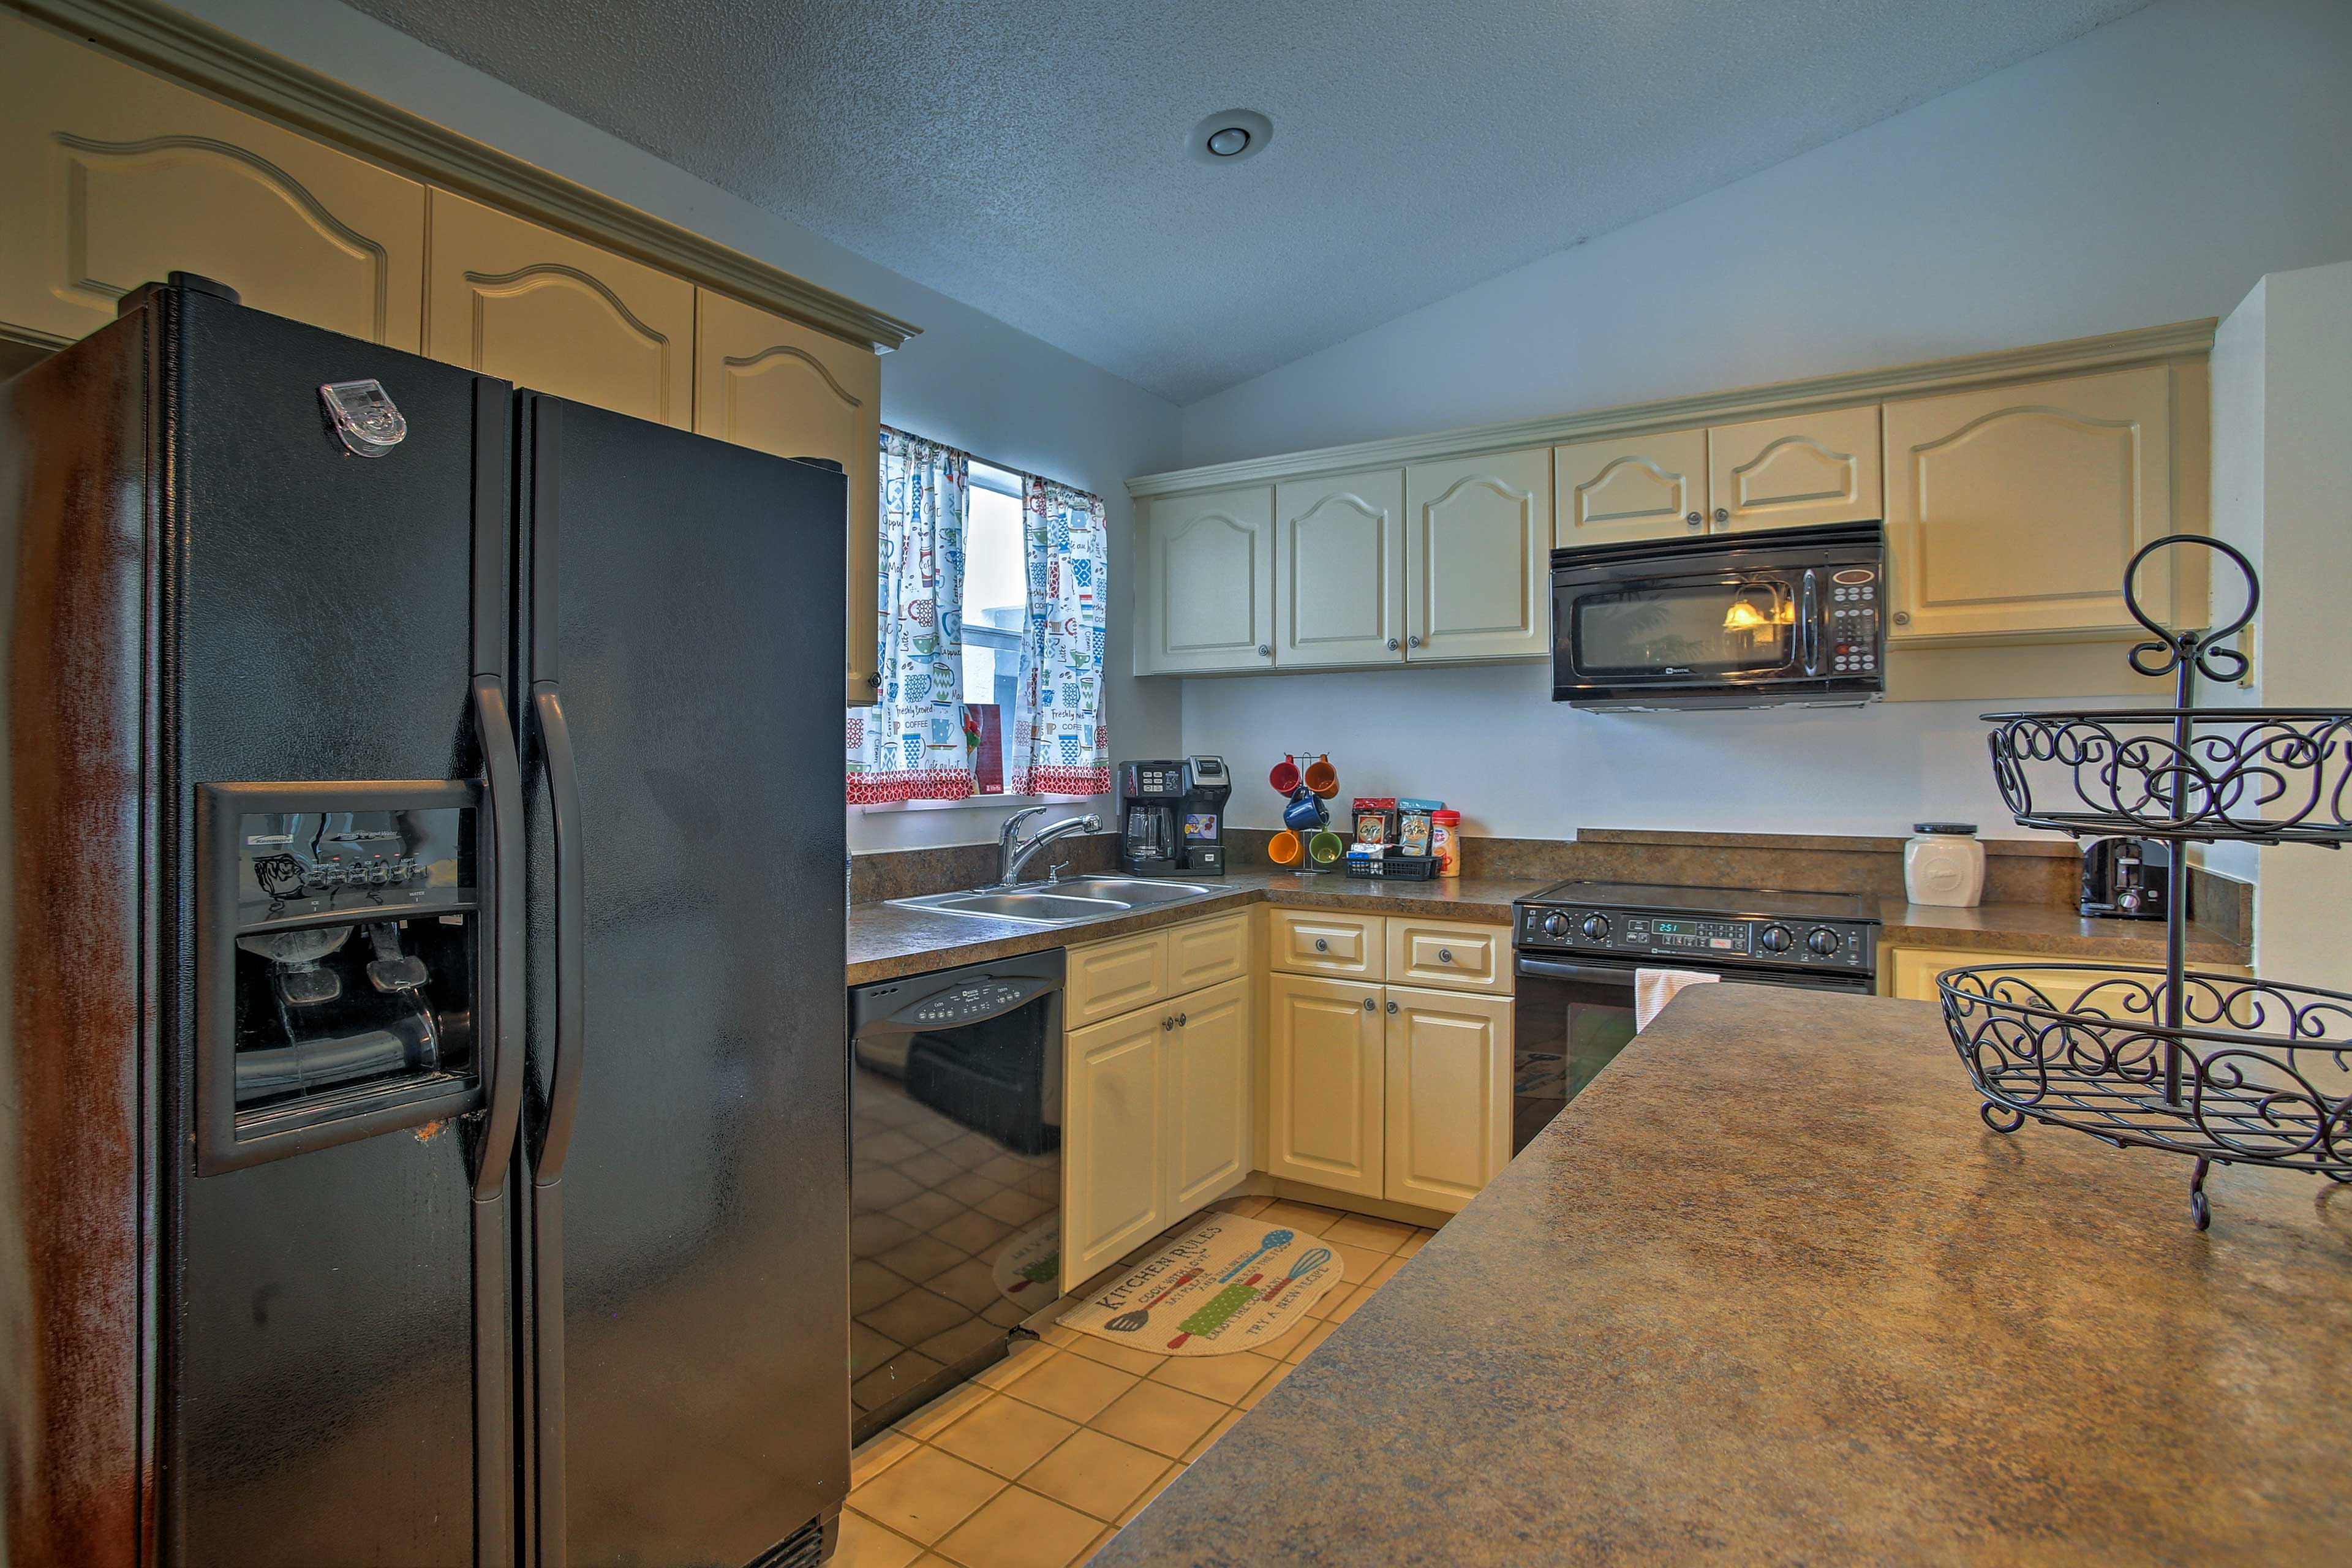 There are never too many cooks in this spacious kitchen.